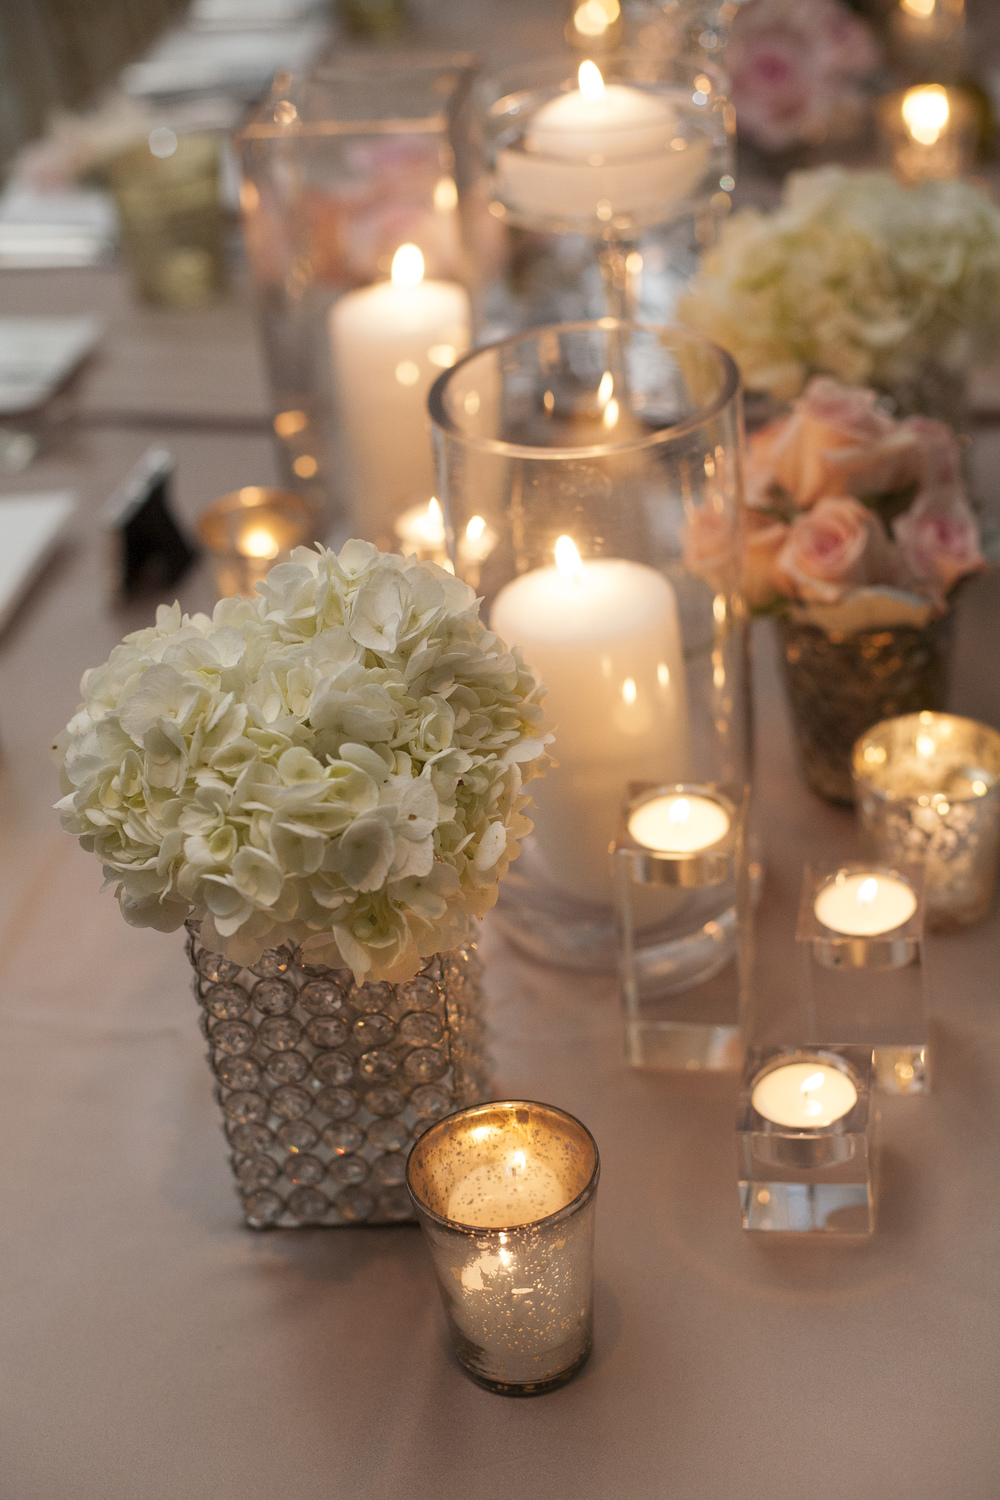 Hydrangea in Crystal Vases and Mercury Glass Candles - An Intimate Wedding at Four Seasons Las Vegas.